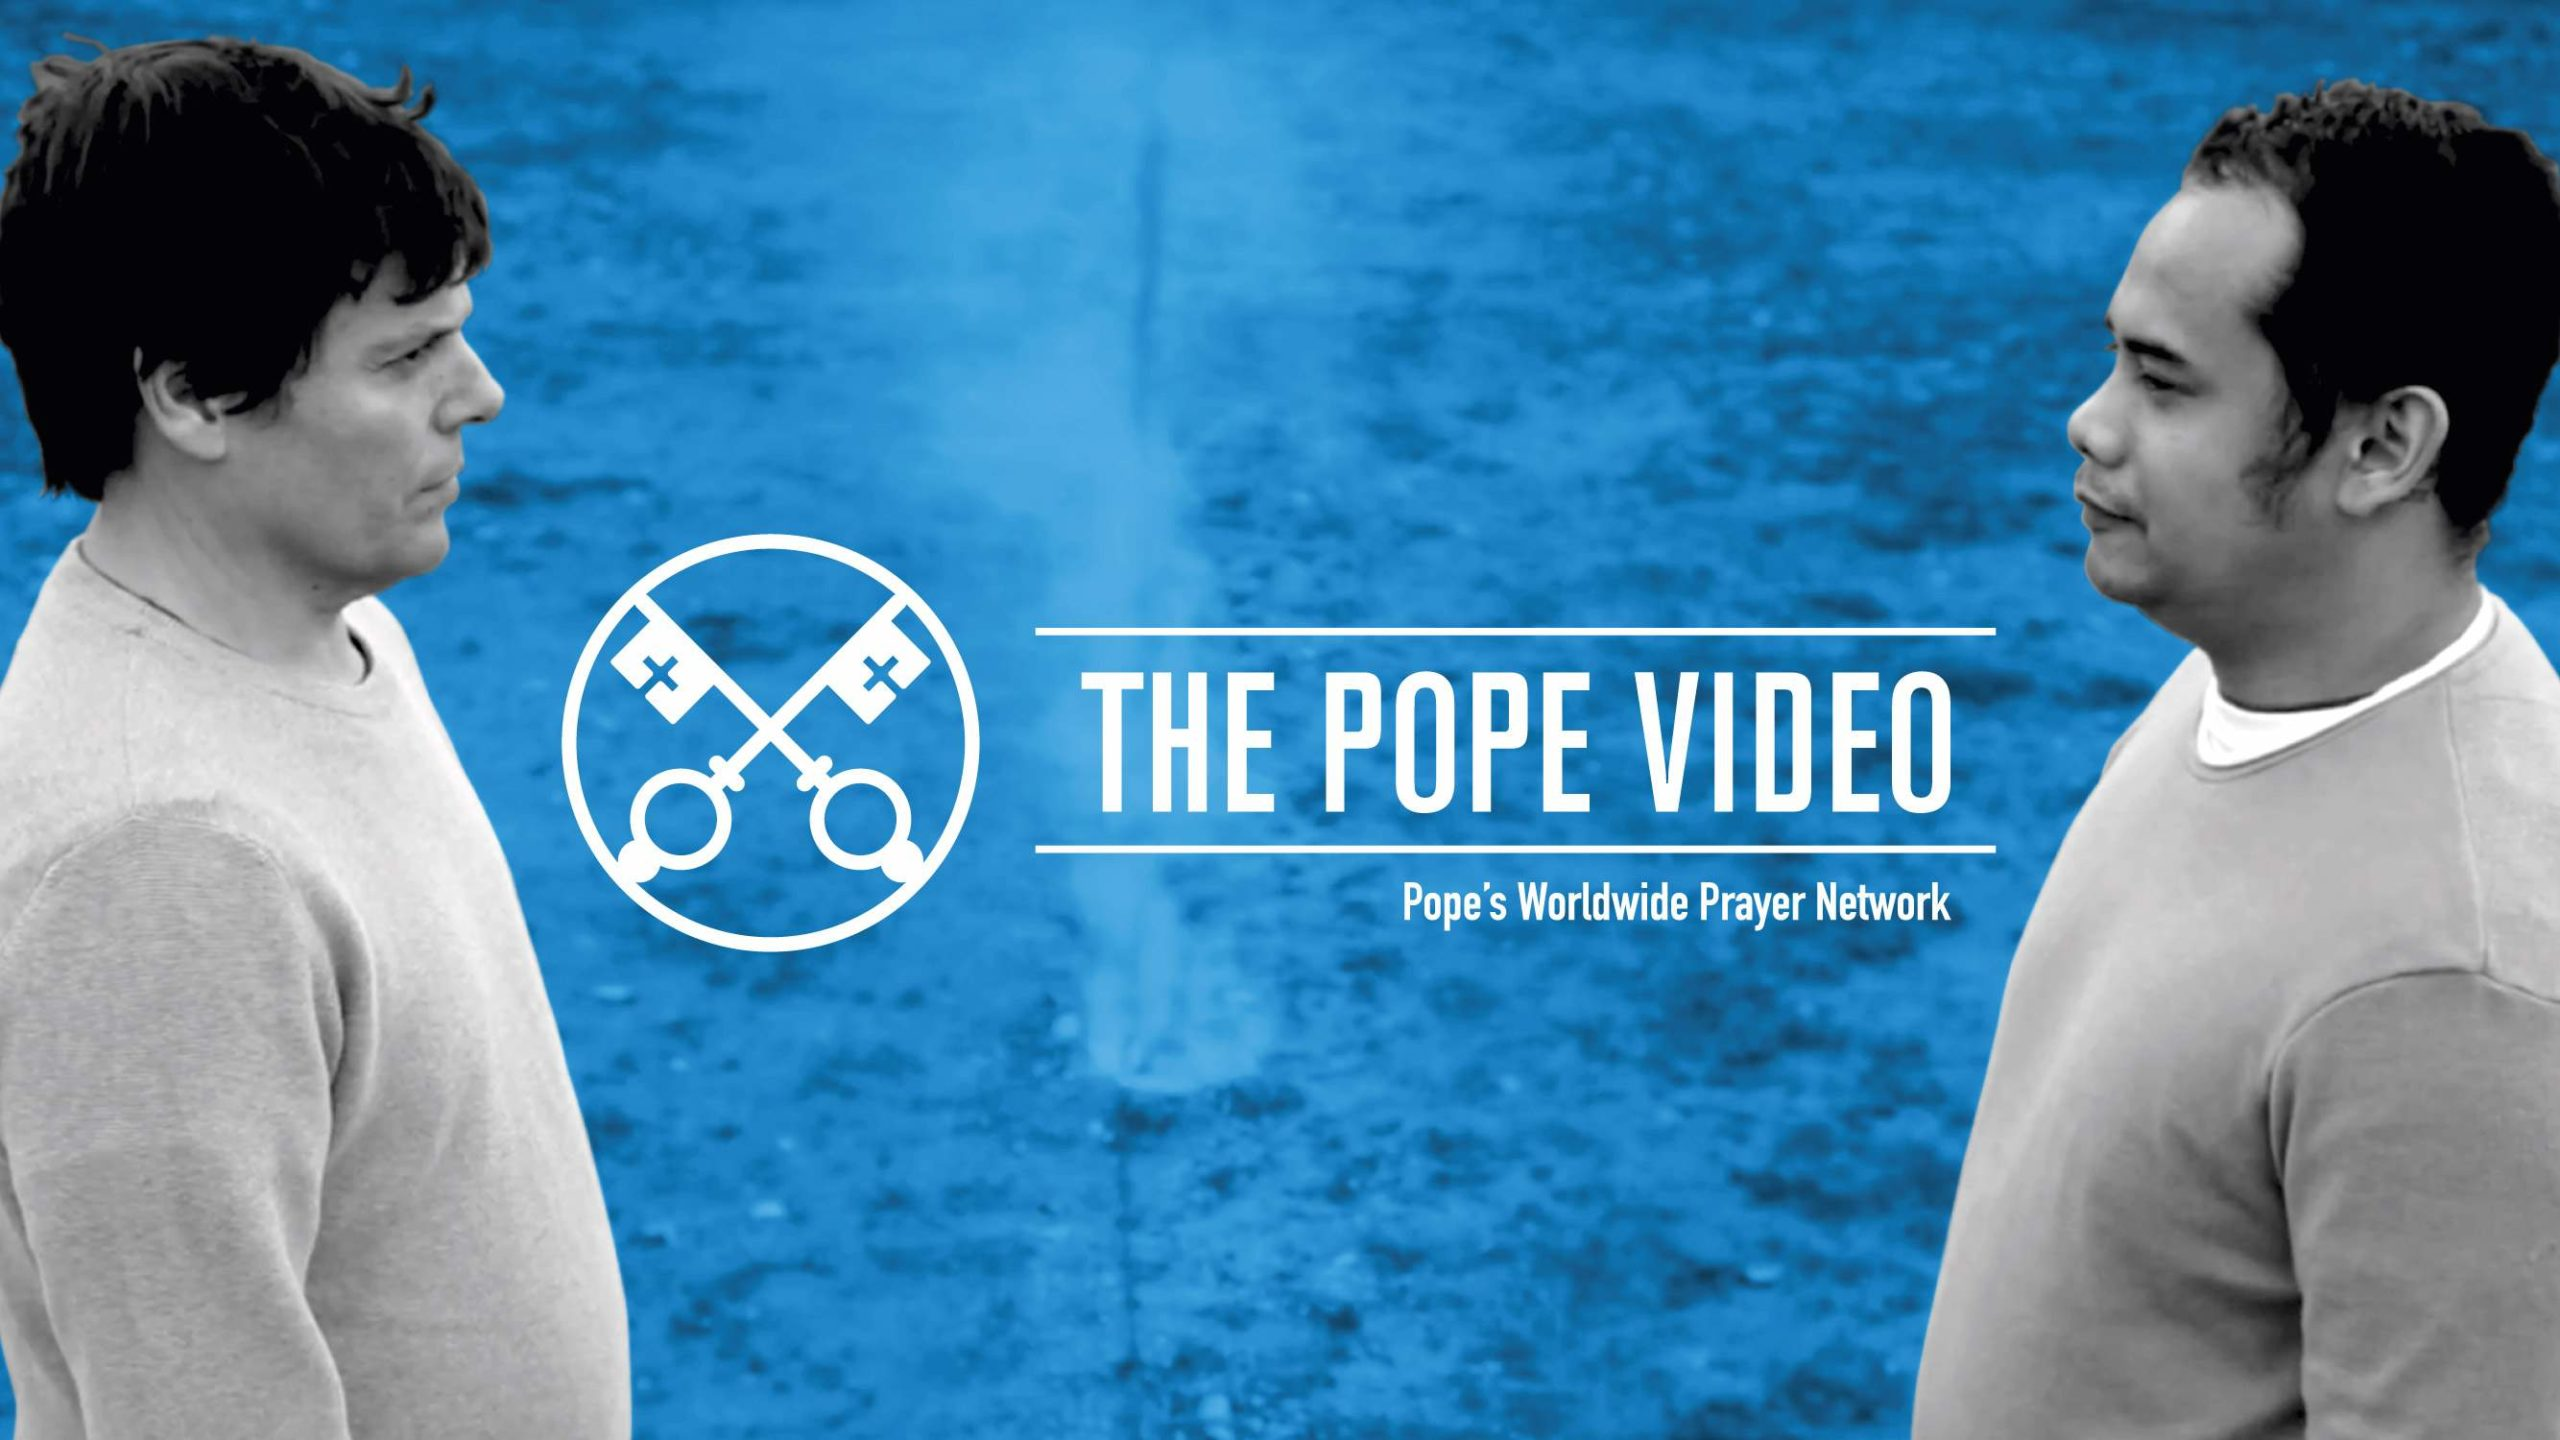 Official-Image-TPV-1-2020-EN-The-Pope-Video-Promotion-of-World-Peace-scaled